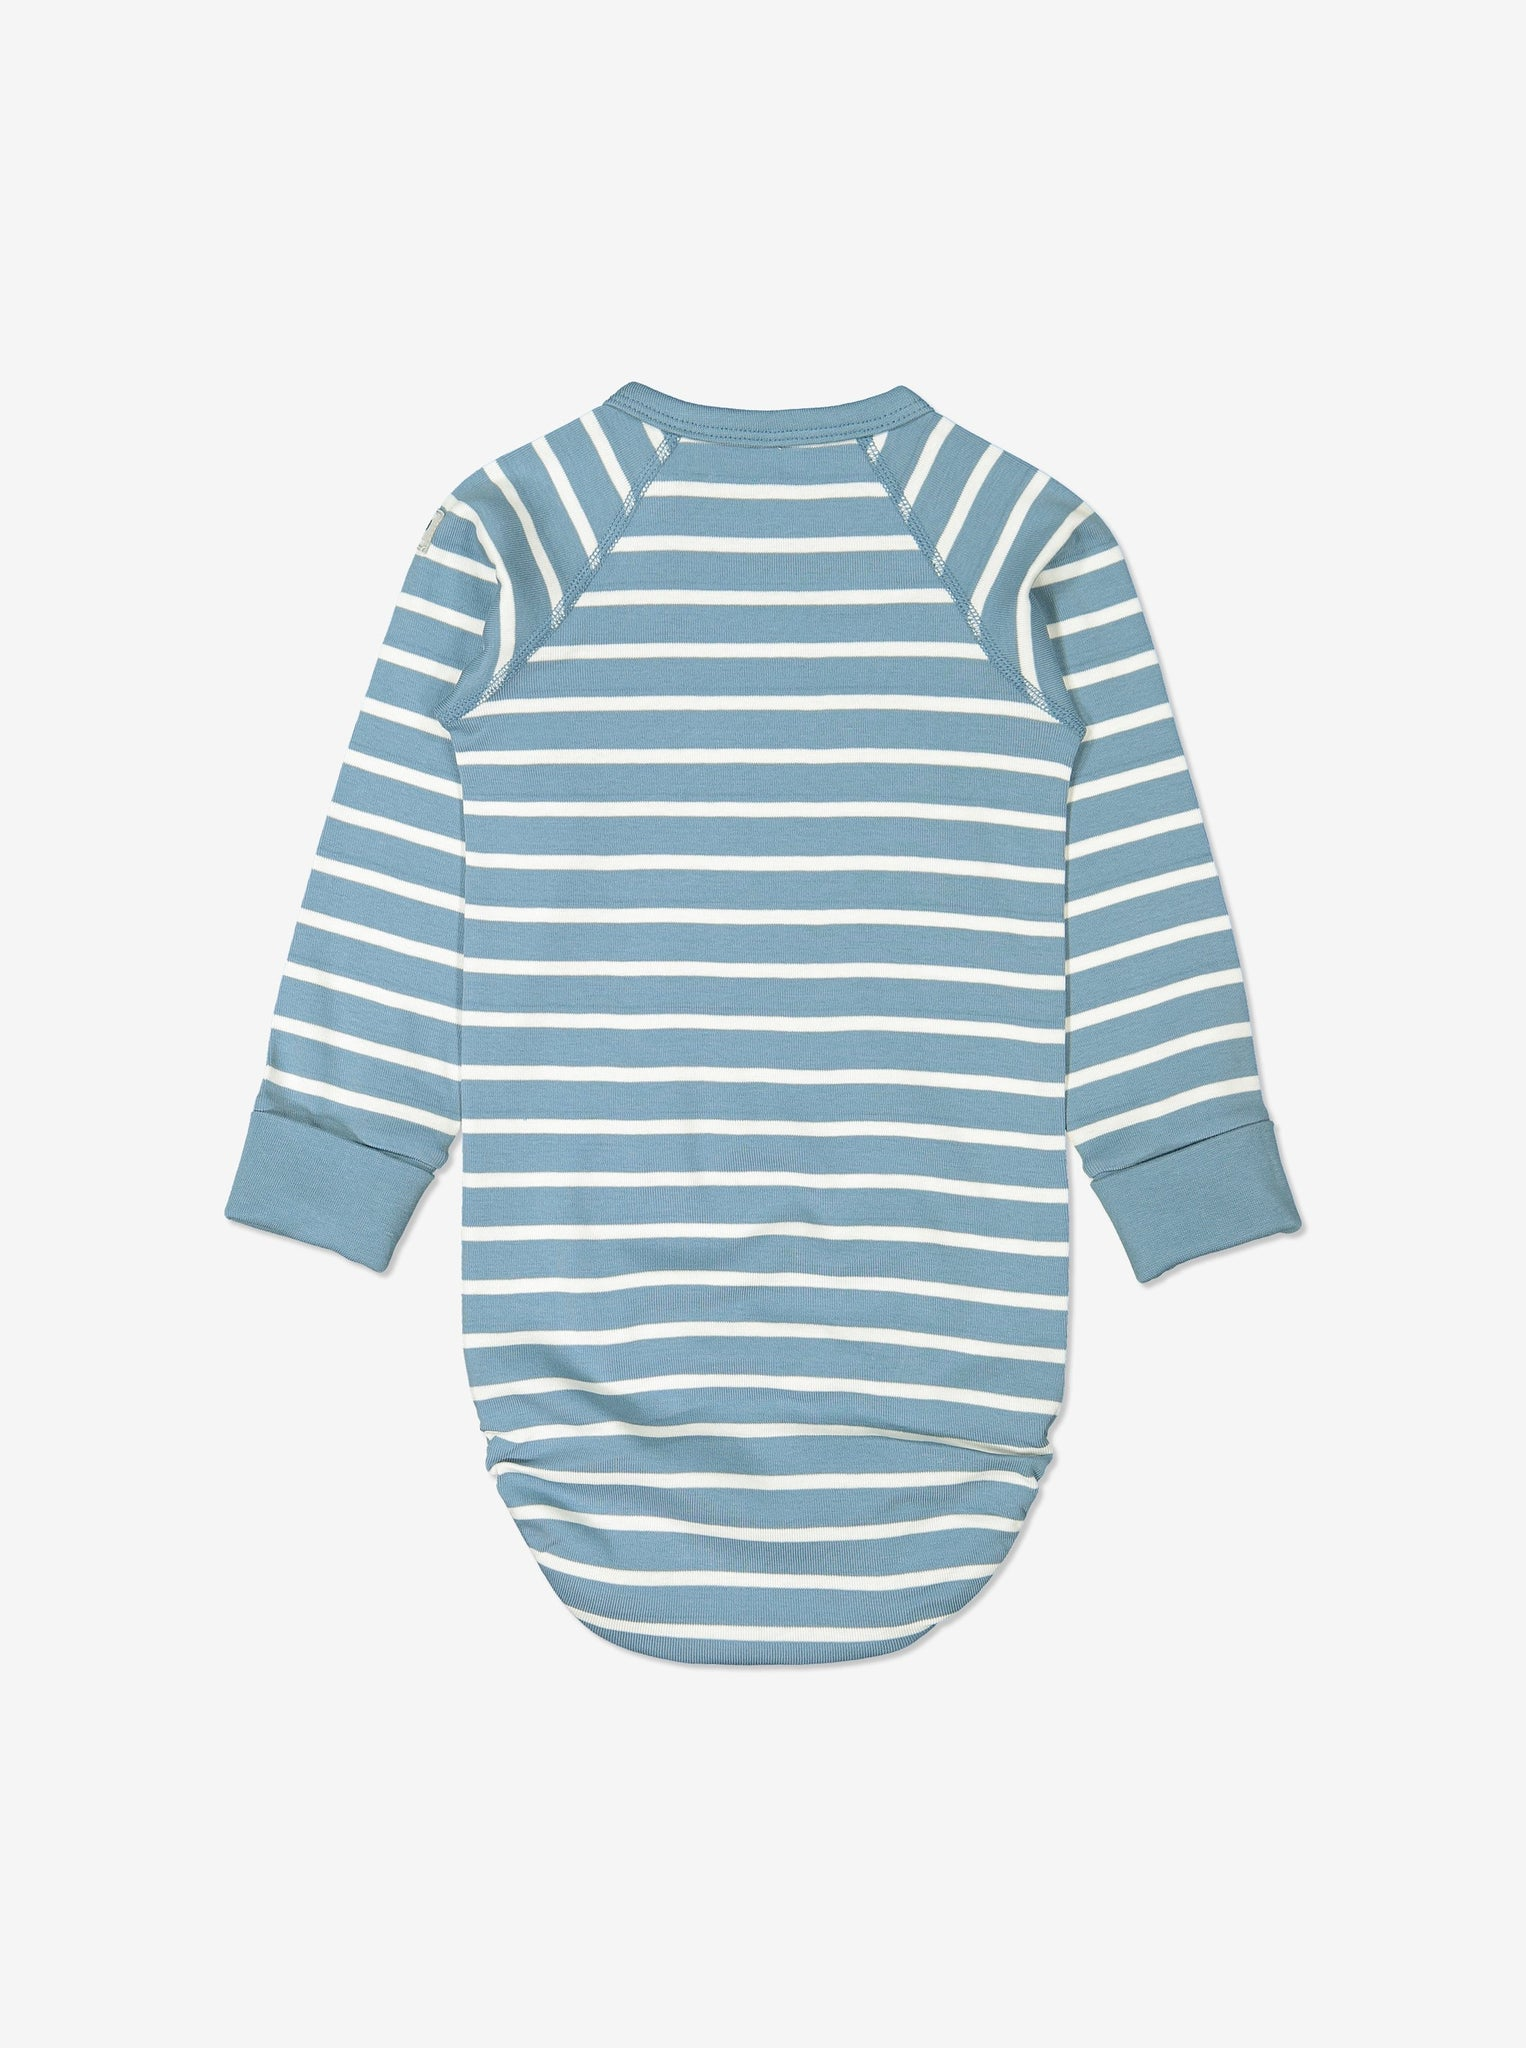 Back view of blue and white striped babygrow for babies, made from GOTS organic cotton fabric